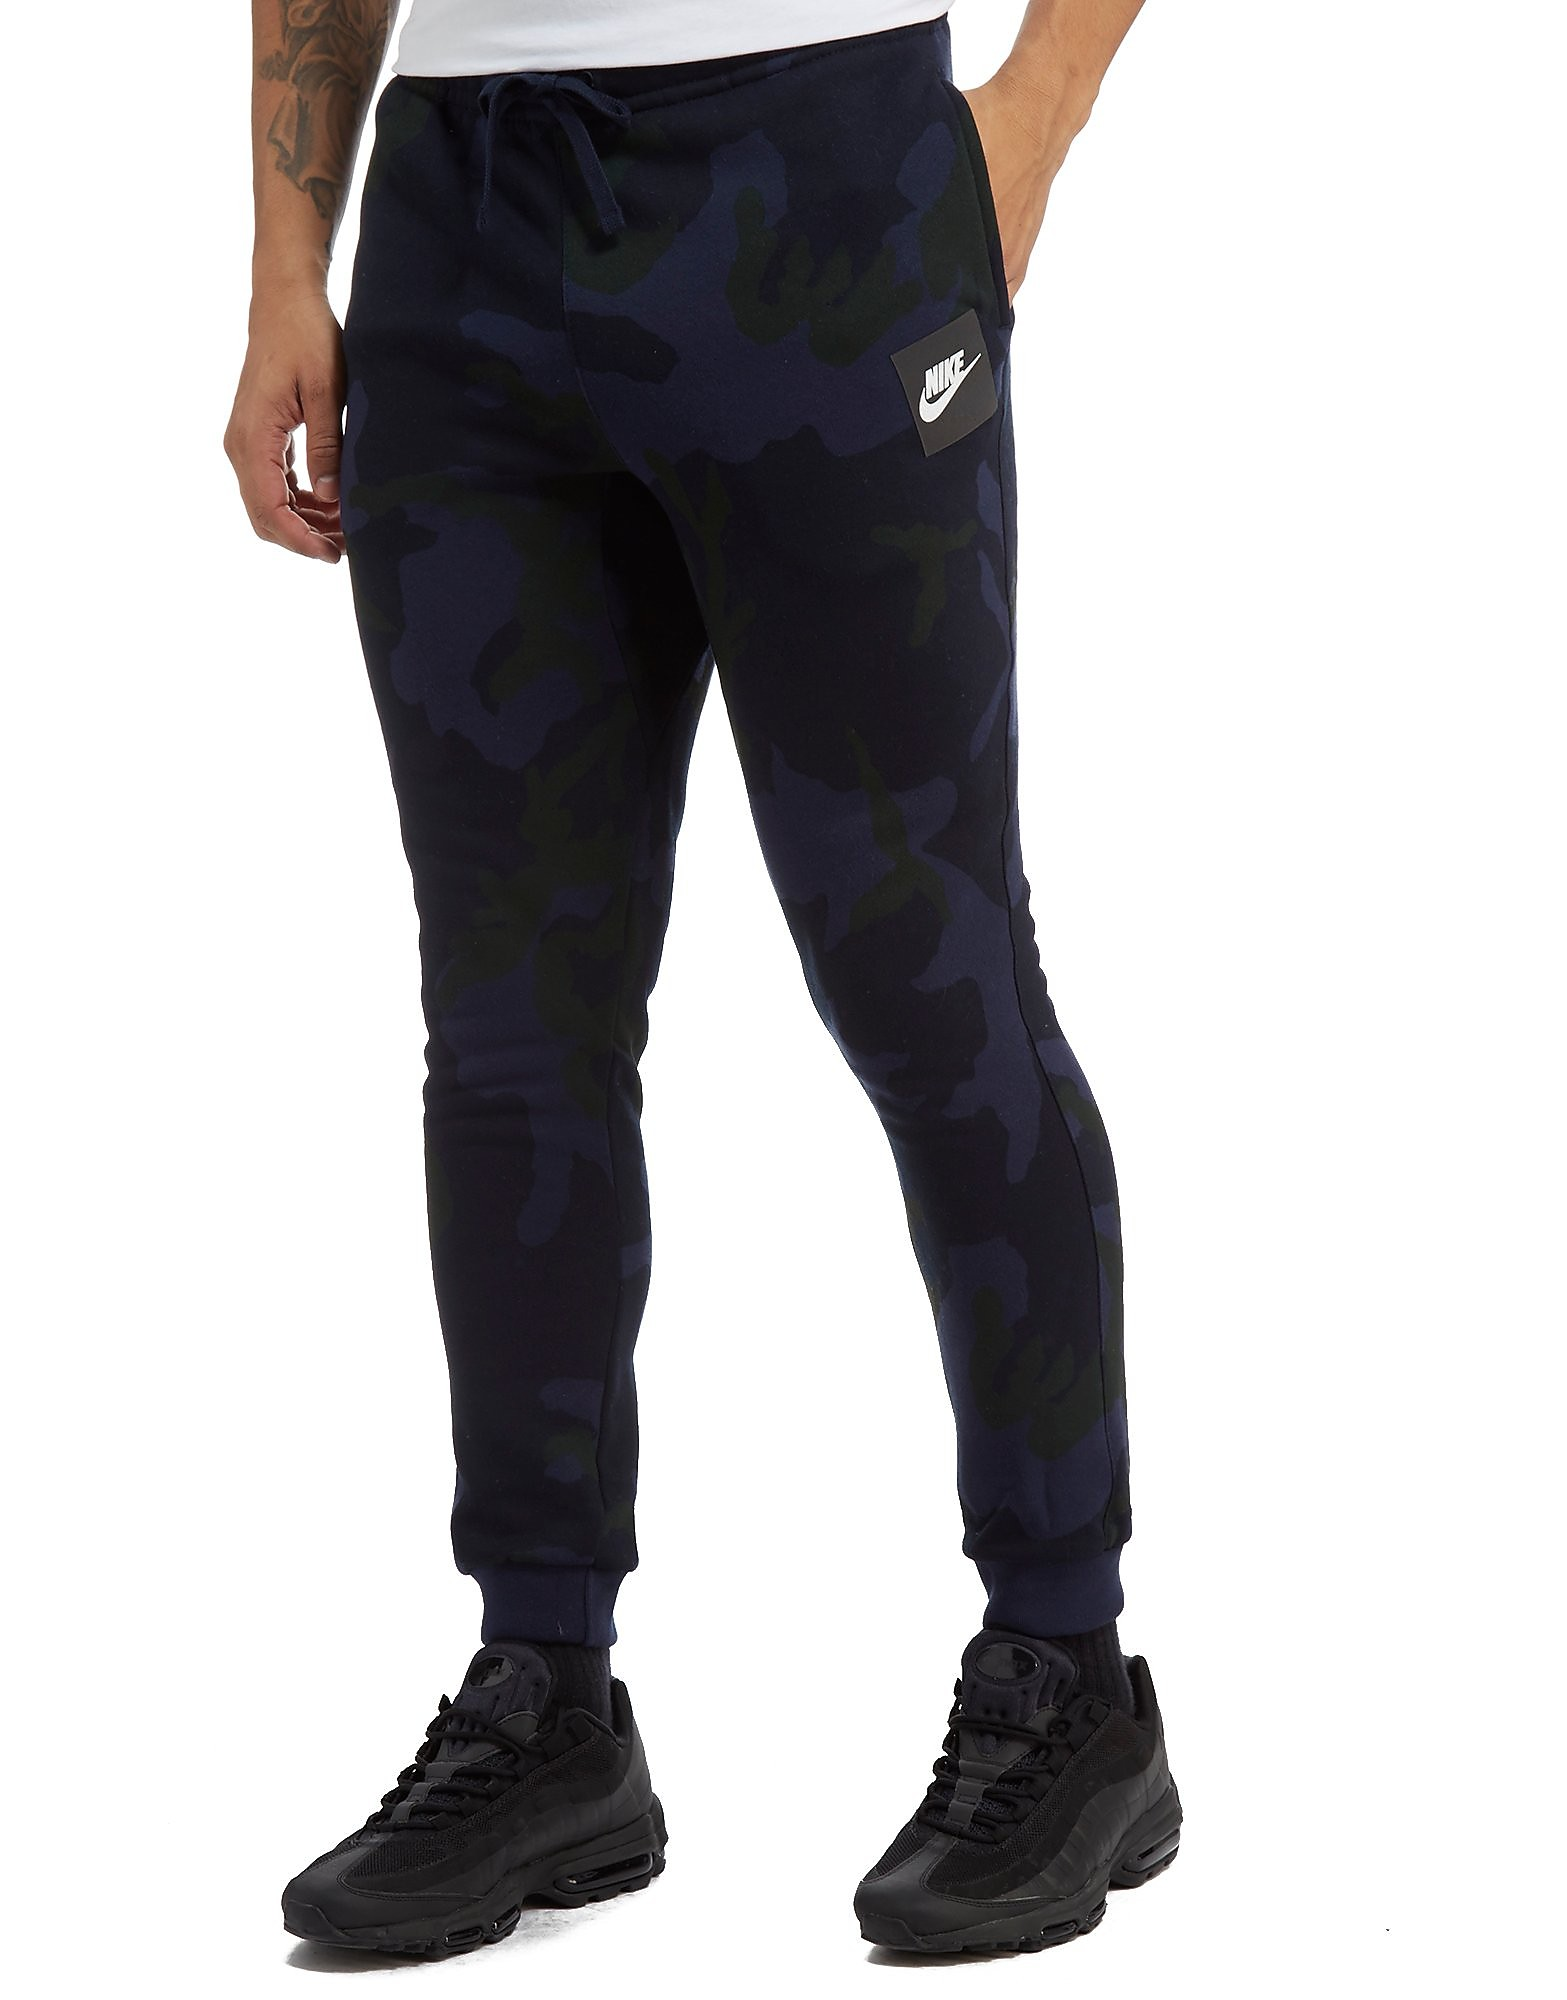 Nike Camo Fleece Pants